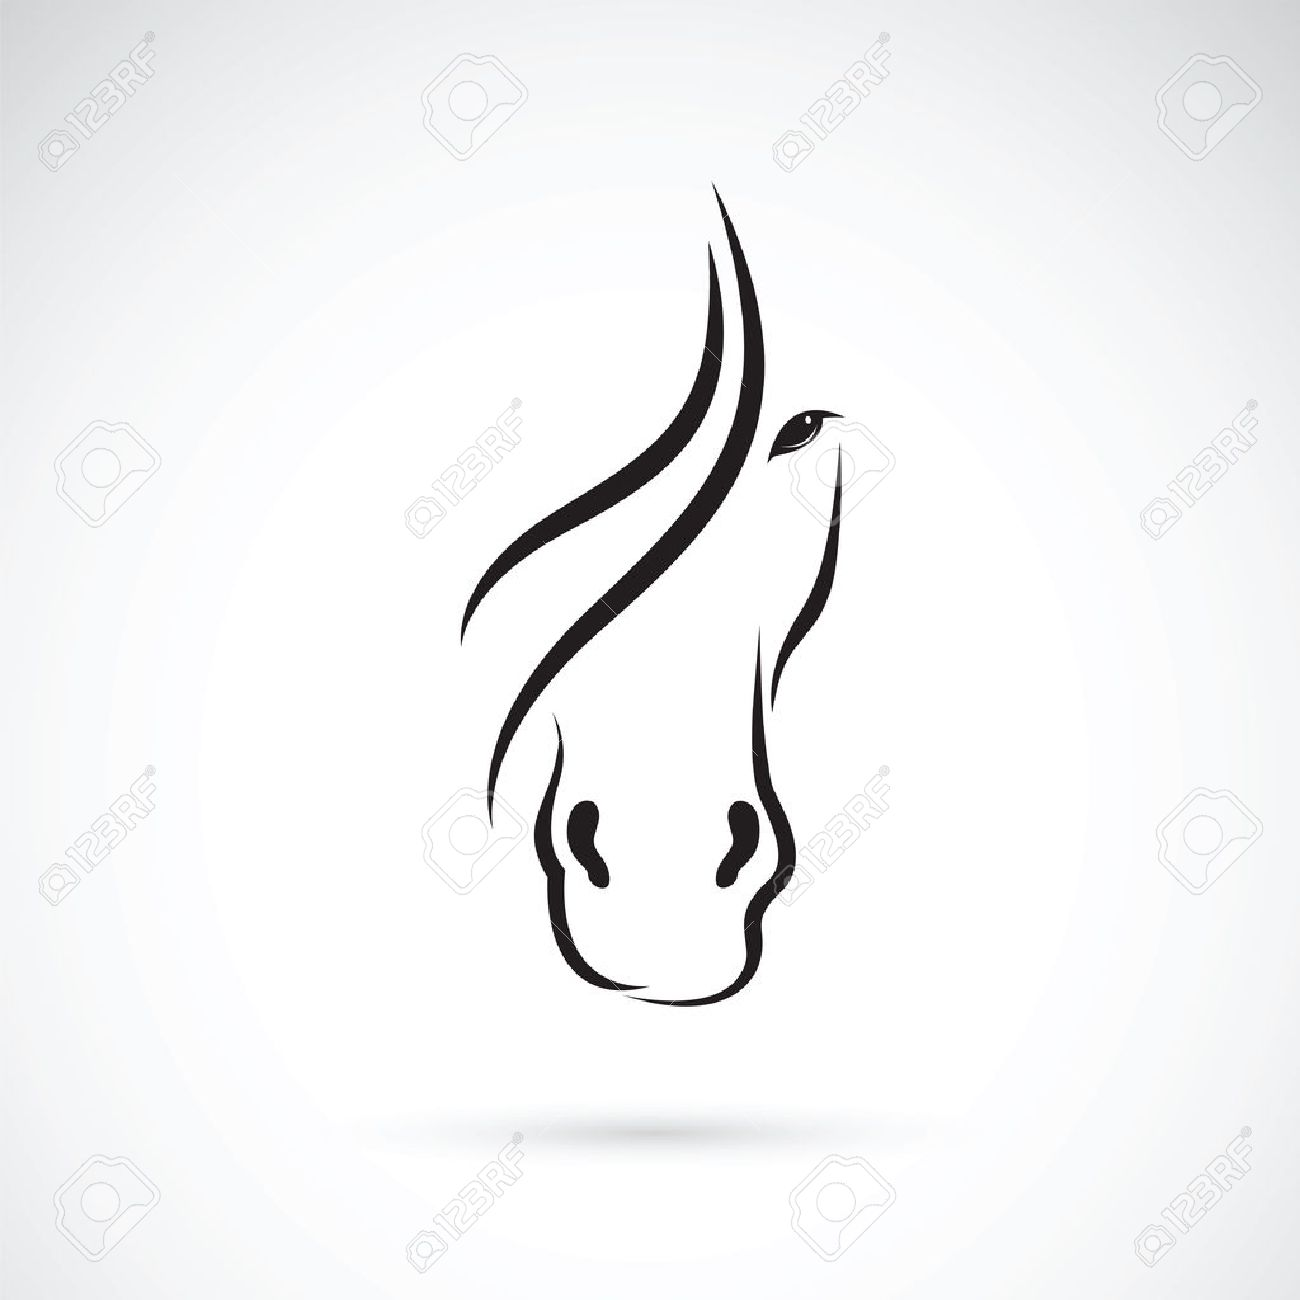 Vector Image Of An Horse Face Design On White Background Royalty